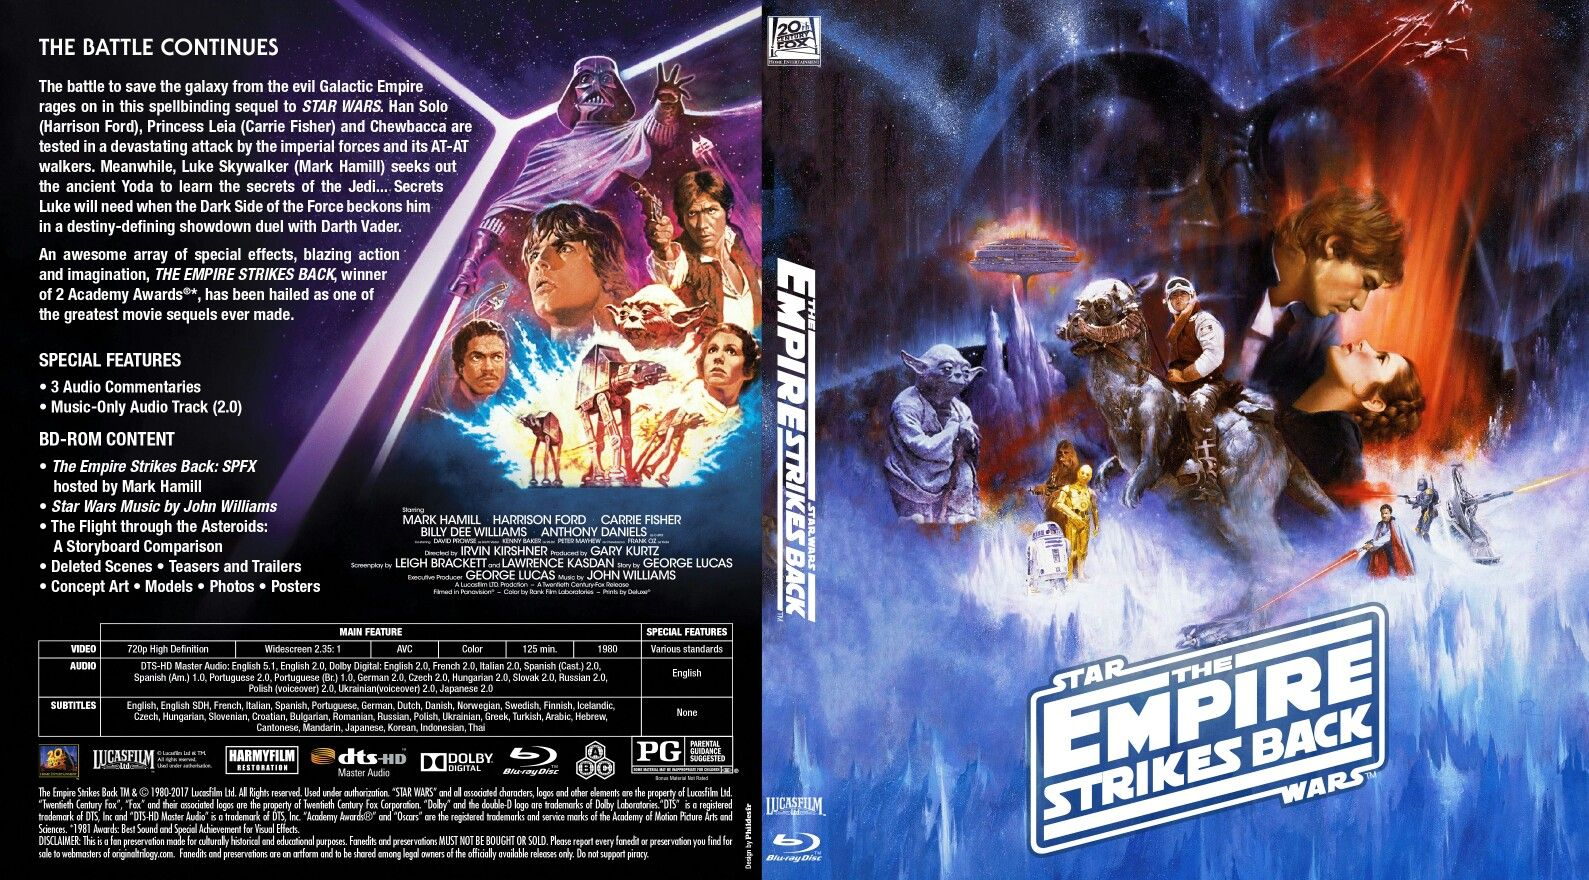 Custom blu-ray cover for The Empire Strikes Back (Despecialized